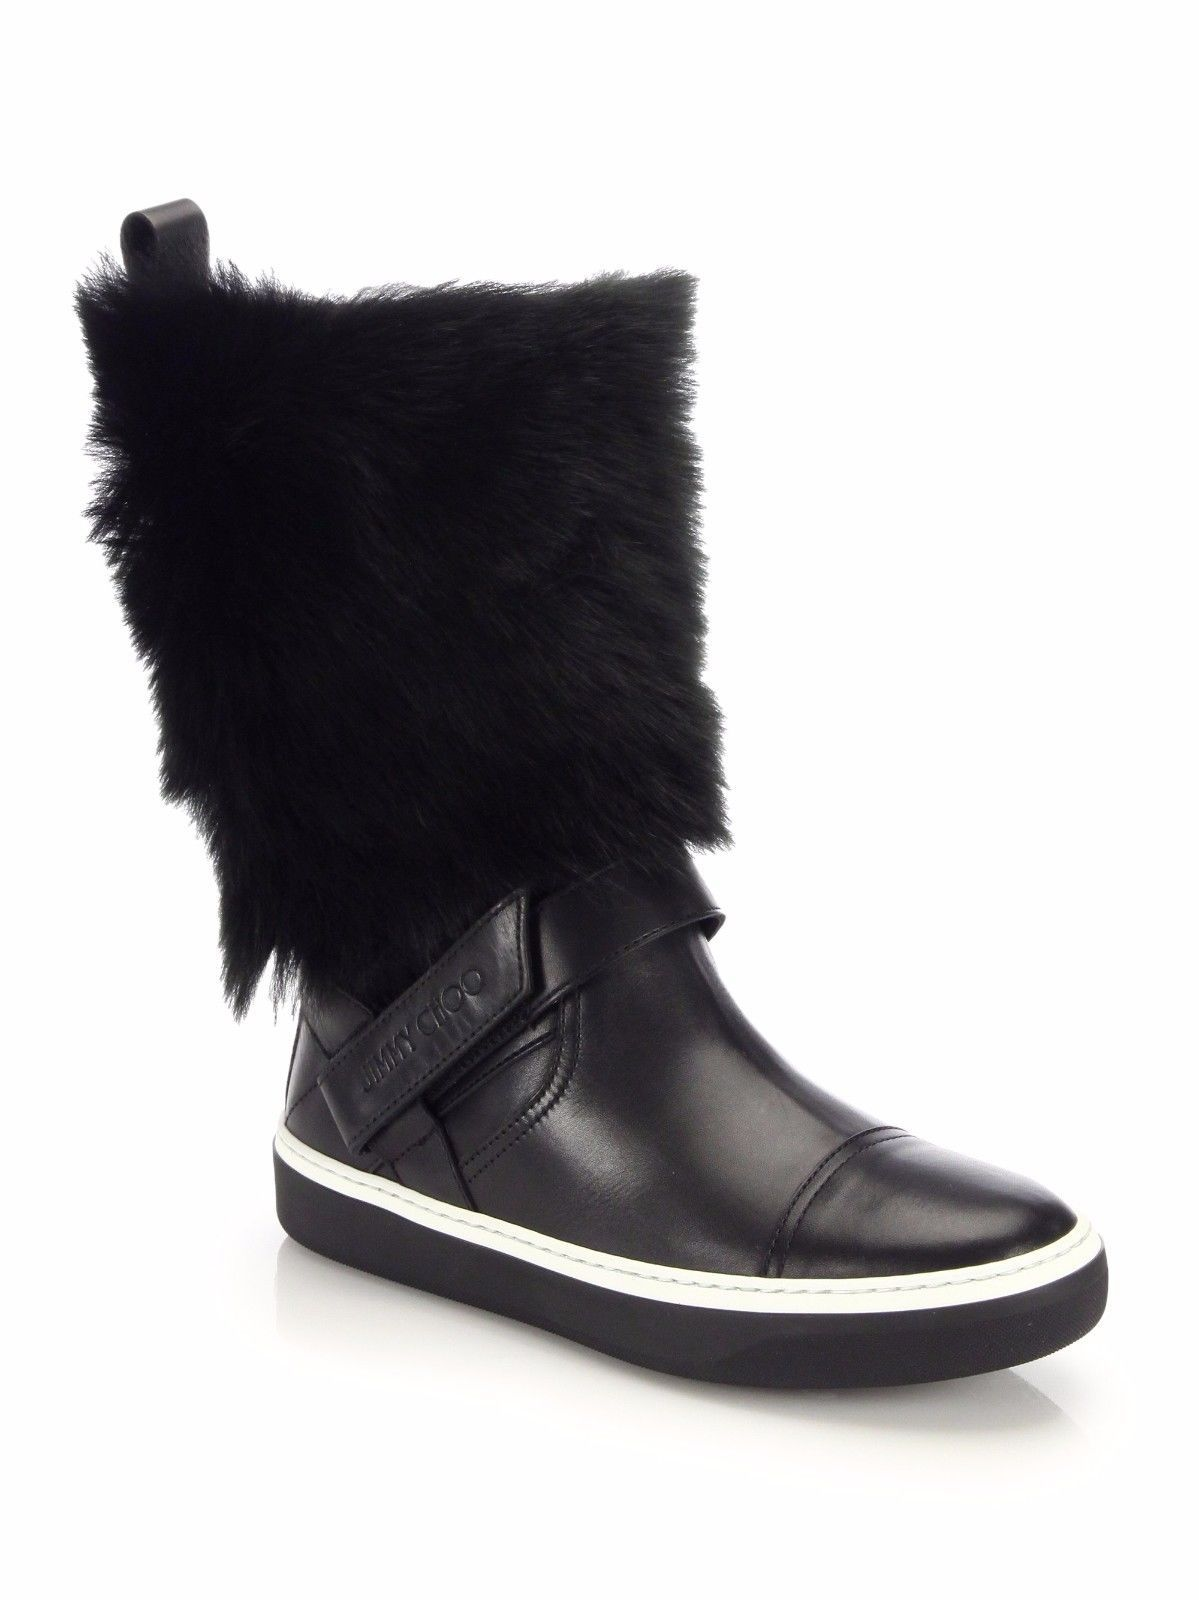 eaf5f6143e98 Jimmy Choo Bury Flat Black Leather with Fur Winter Boots Shoes 37